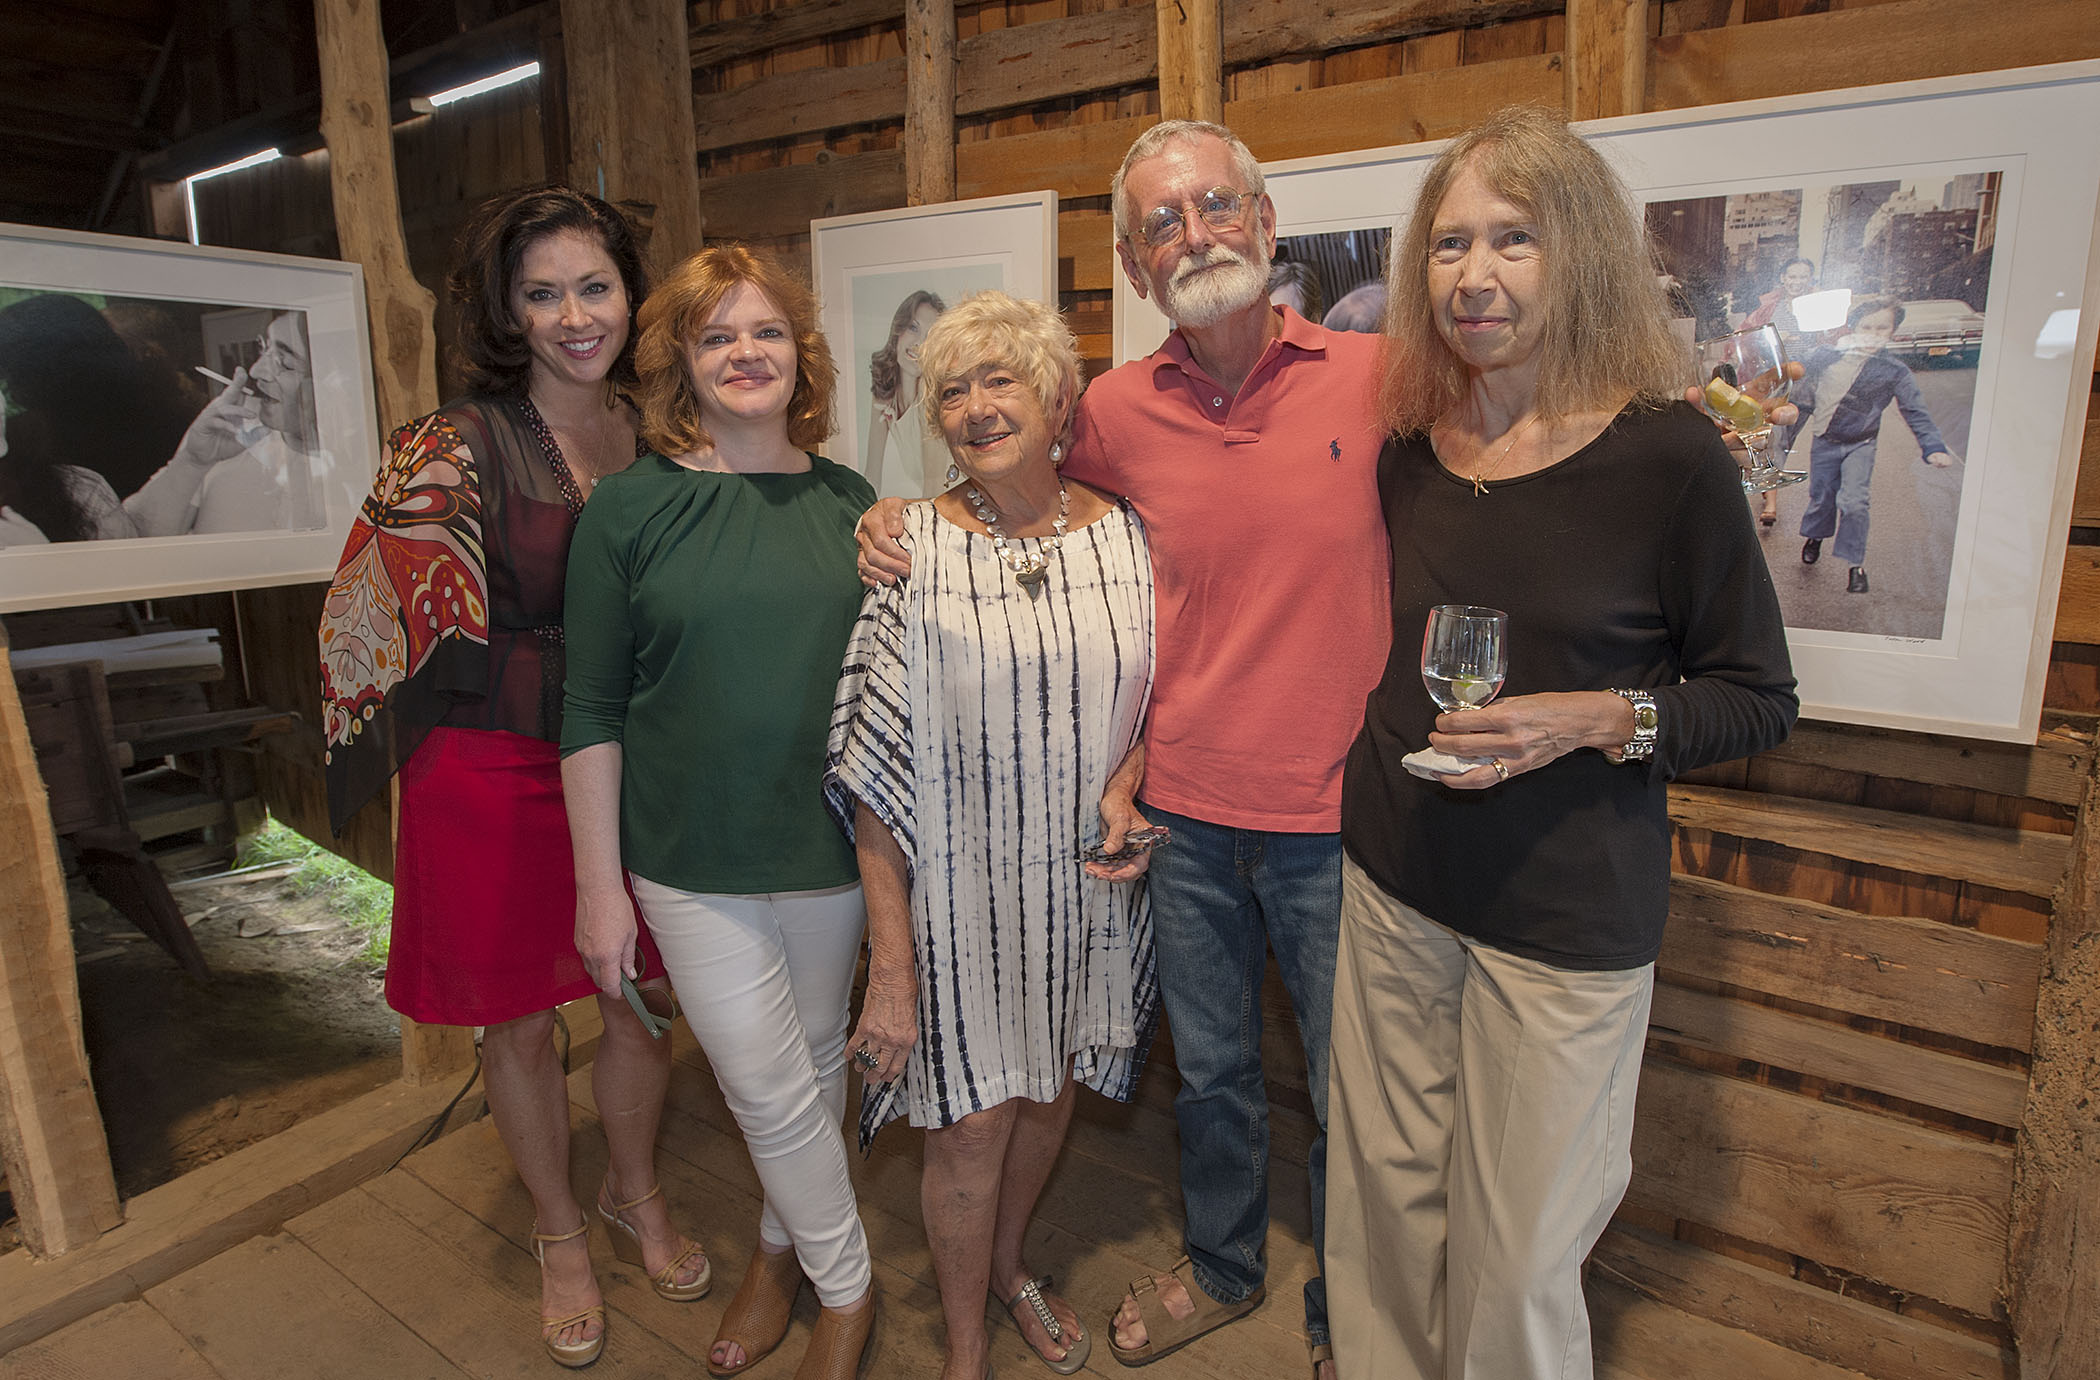 Lynn Stefanelli, curator Deidre Brennan, Susan Wood, Richard Barons (Director of the East Hampton Historical Society) and Roseanne Barons (credit: michael heller)